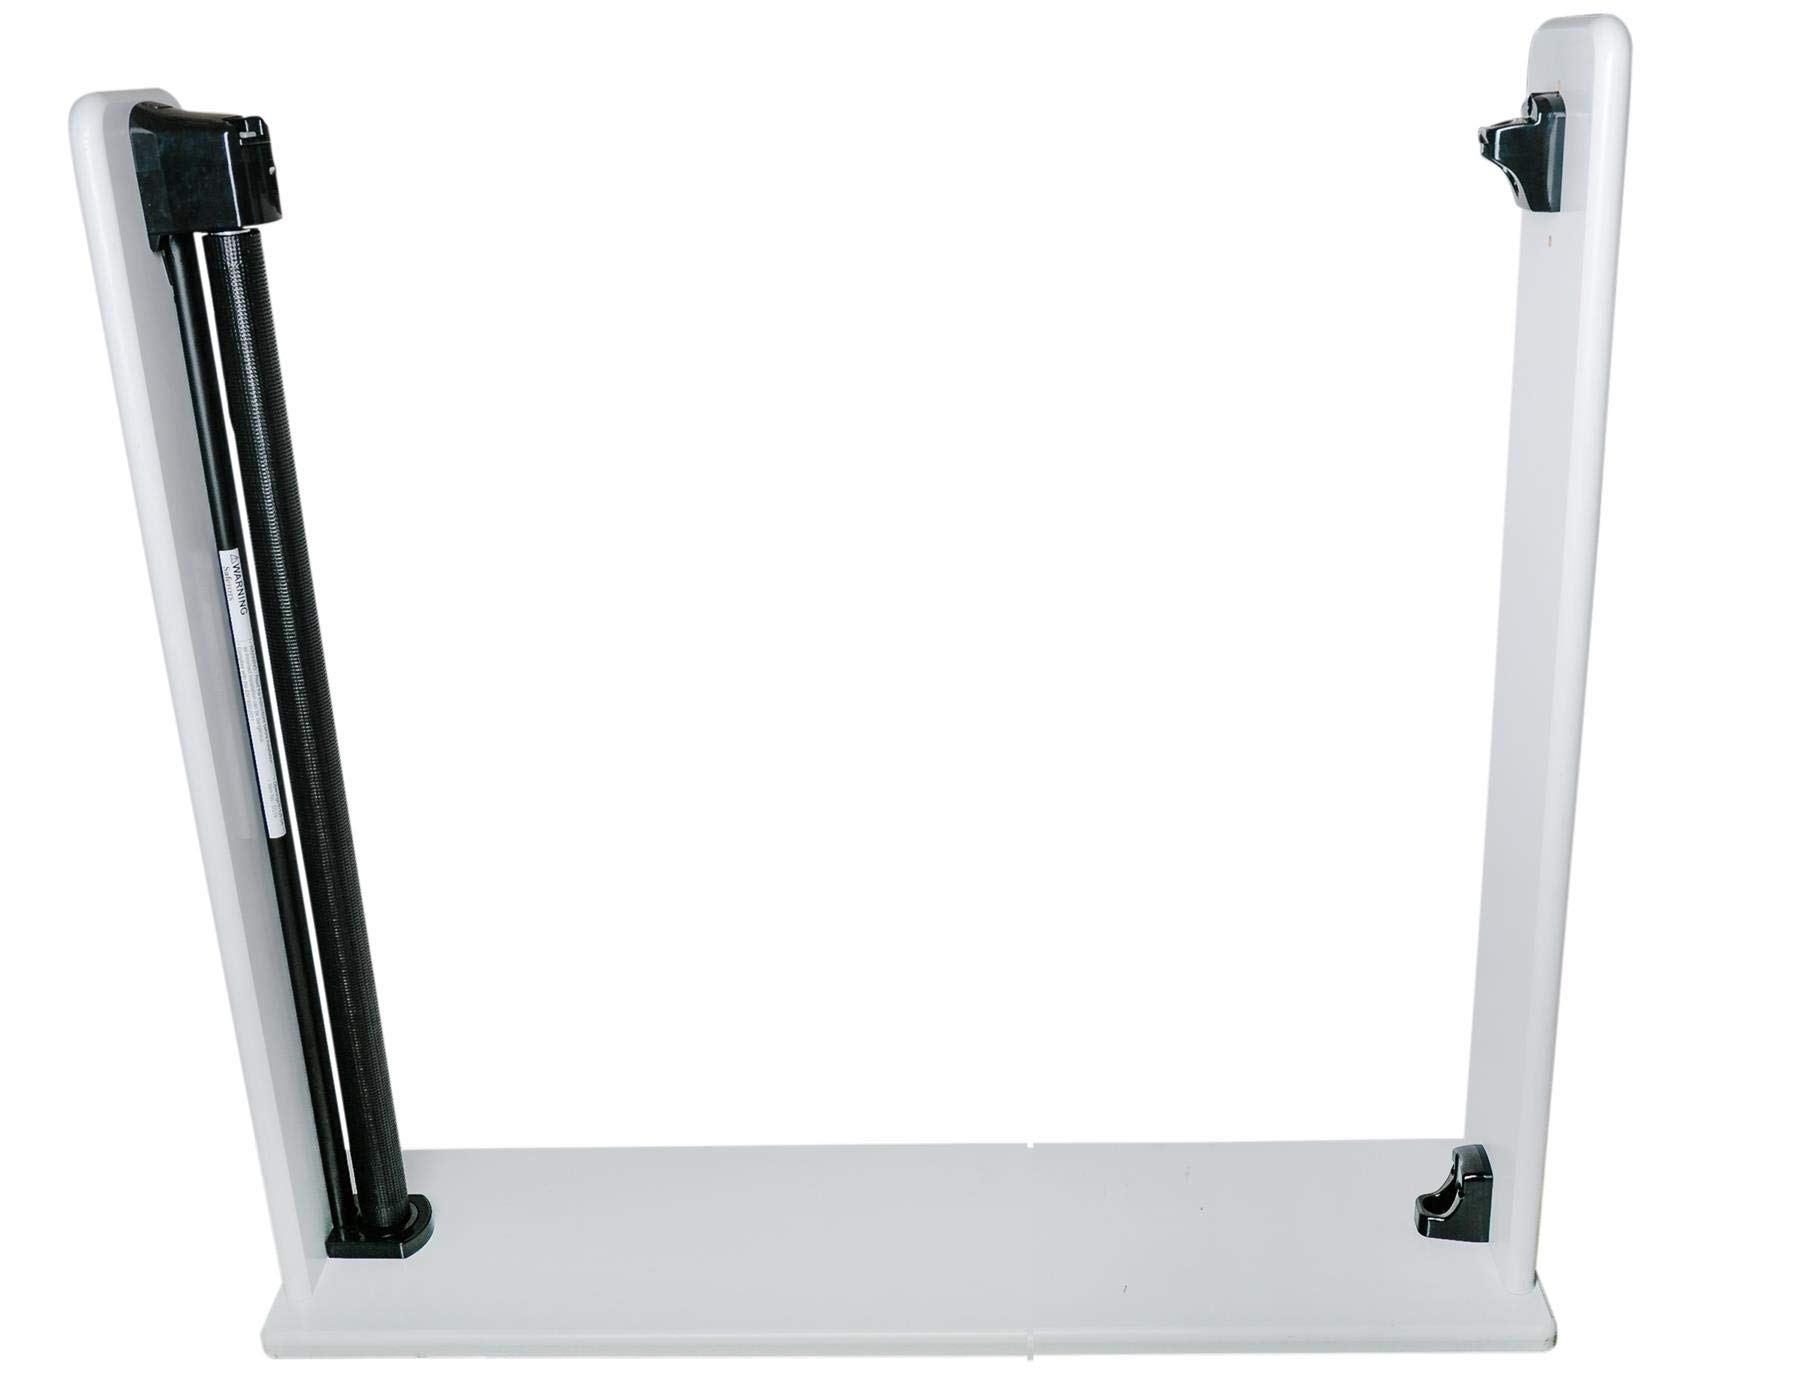 Safetots Extra Tall and Wide Advanced Retractable XL (Black) Safetots Adjusts to fit openings from 20cm-140cm 95cm in Height, the tallest Safety Tested Retractable Gate on the market Screw fit, mesh barrier with steel frame 3